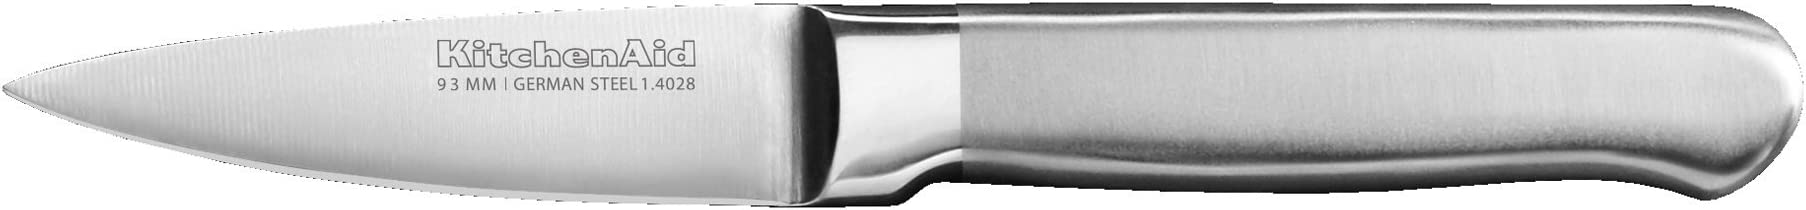 KitchenAid KKFSS3PRST Classic Forged Series Brushed Paring Knife, Stainless Steel, 3.5""